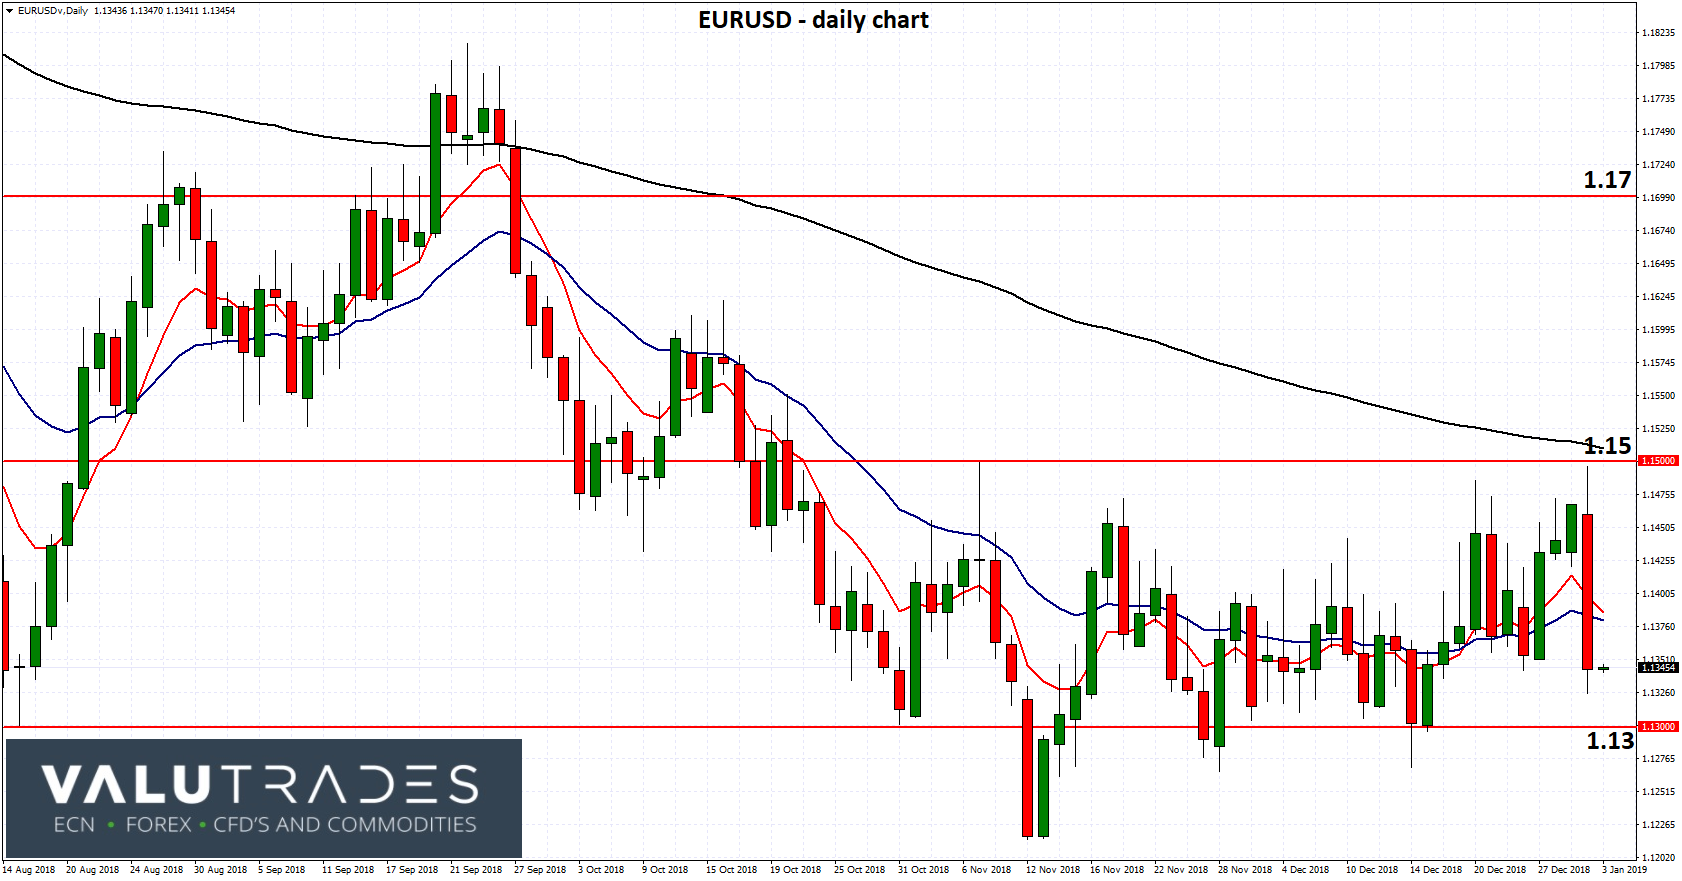 EURUSD - Drops Sharply But Eyes Off Support from 1.13 Level